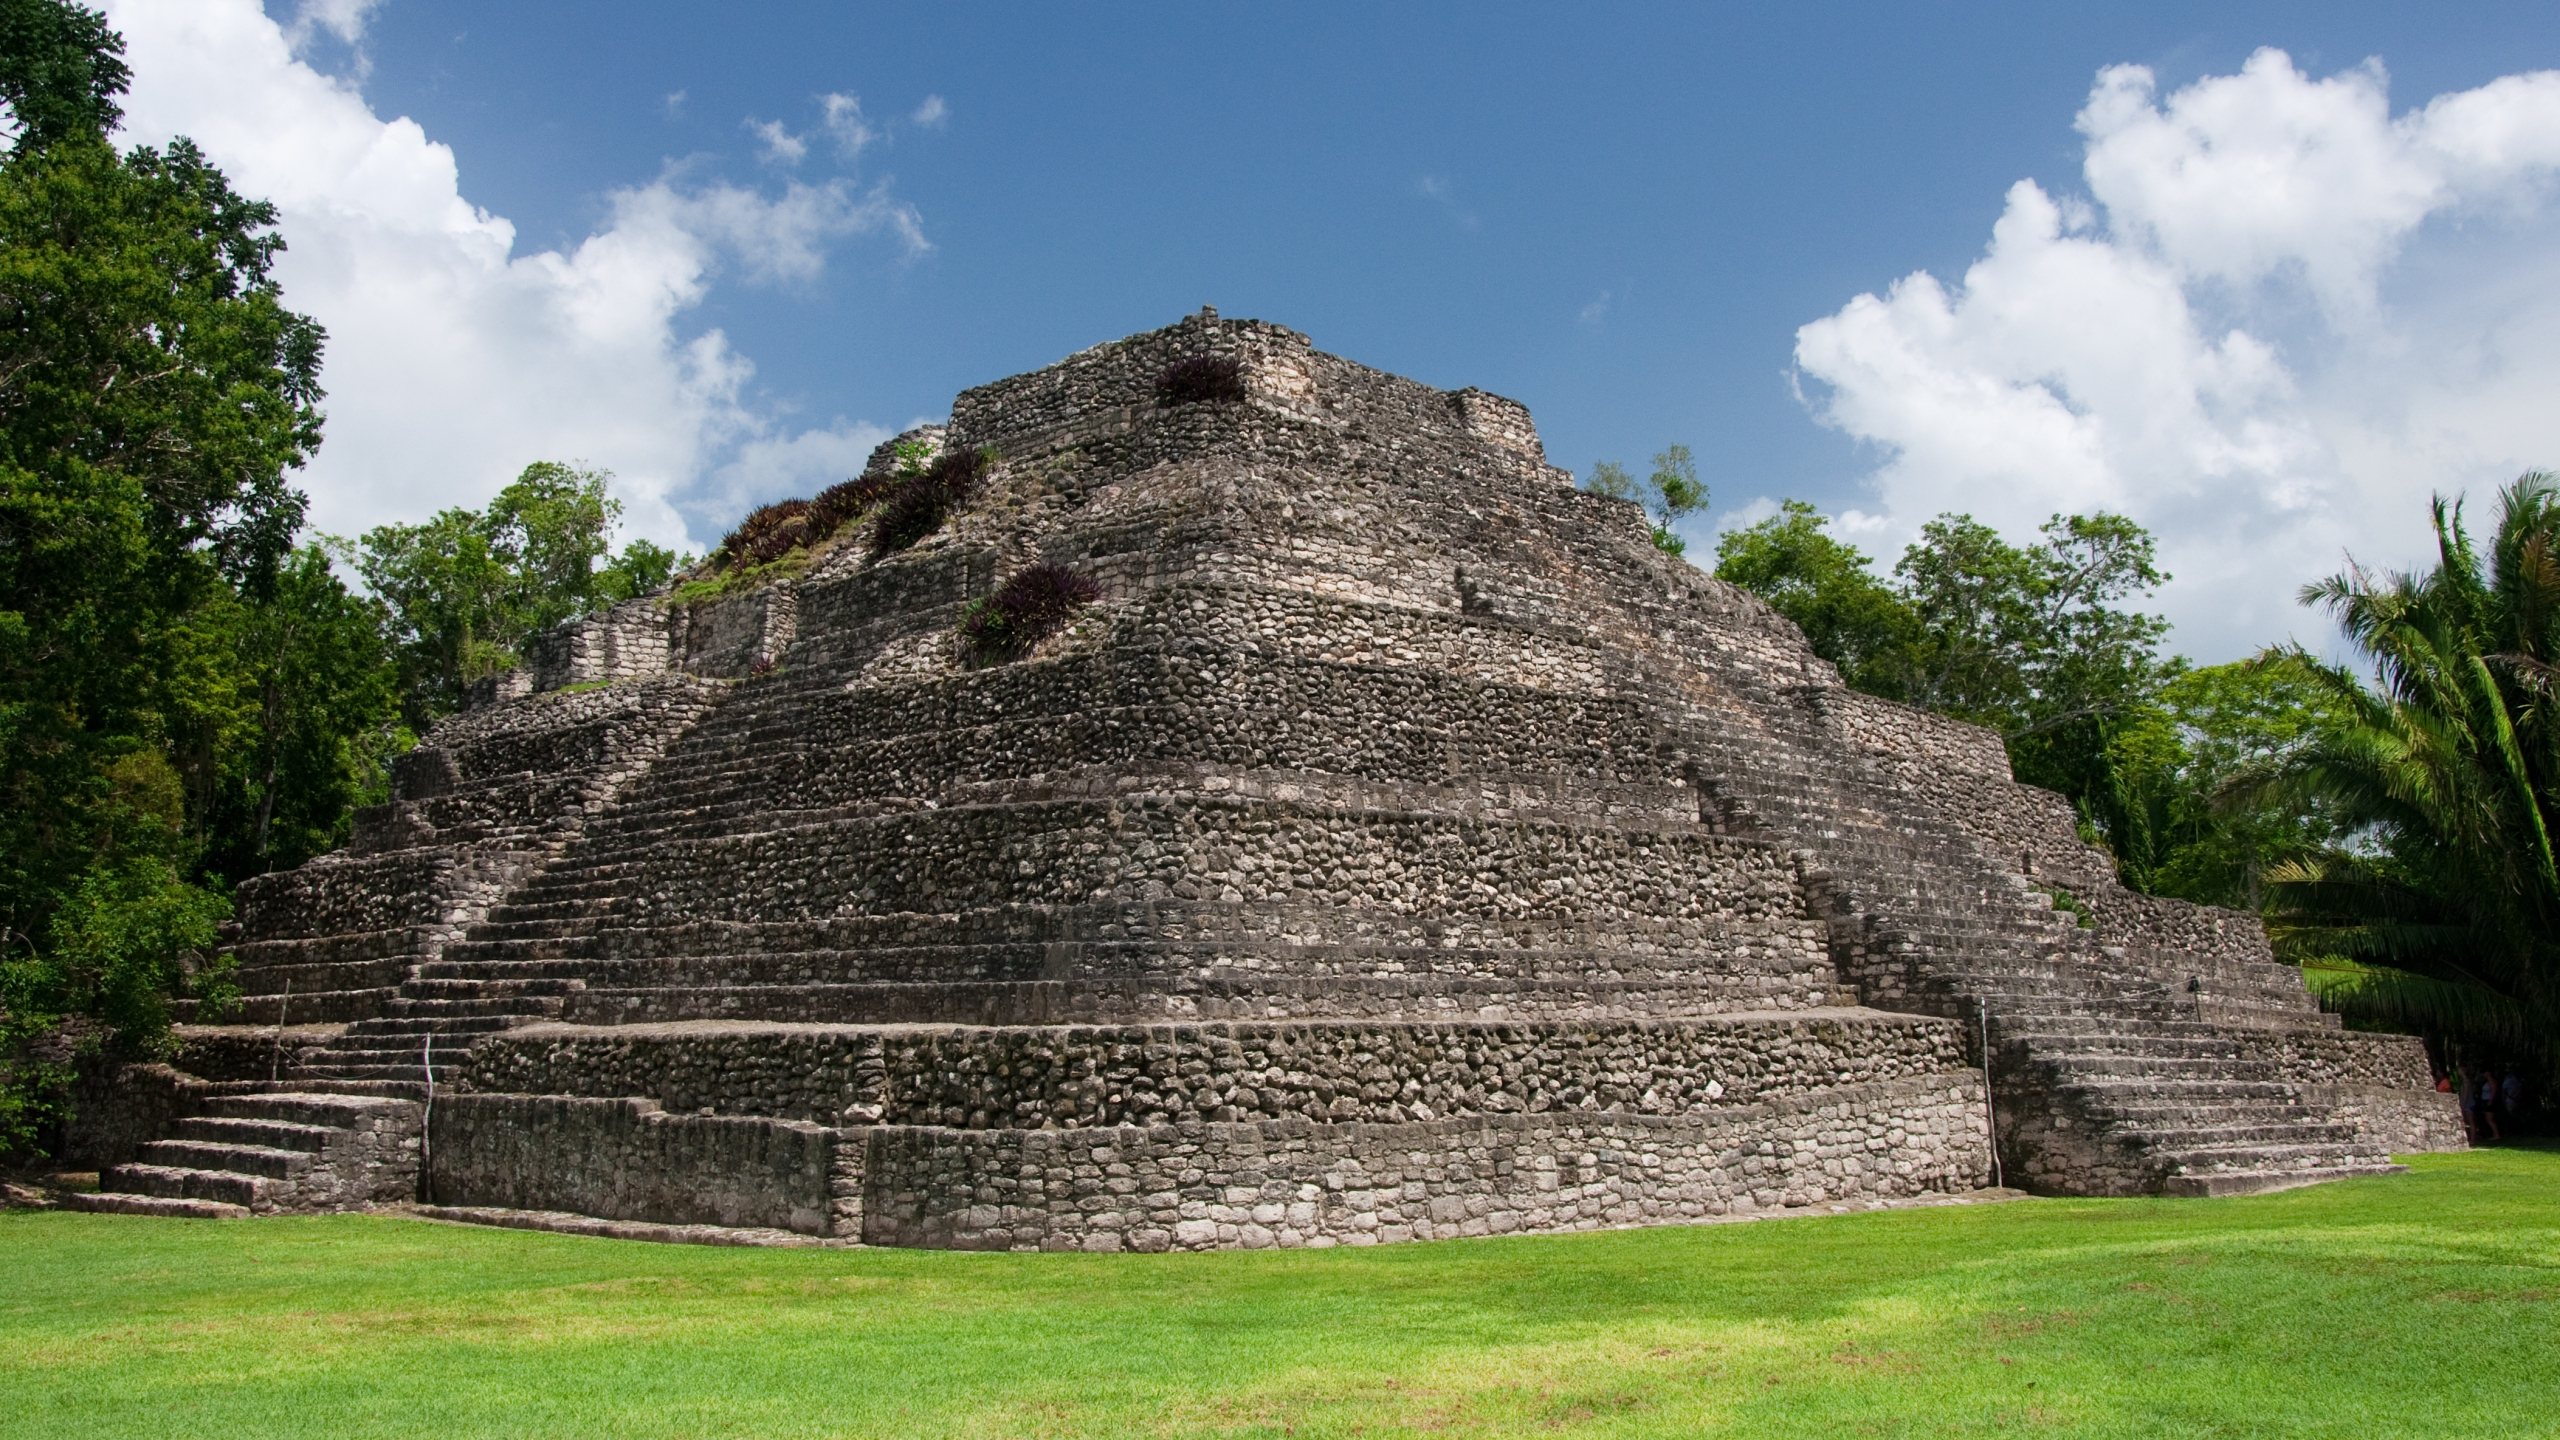 Newly restored pyramid from the Chaccoben Ruins accessible by sea at the south of the Quitaroo Roo state. (Credit: iStock / Getty Images)